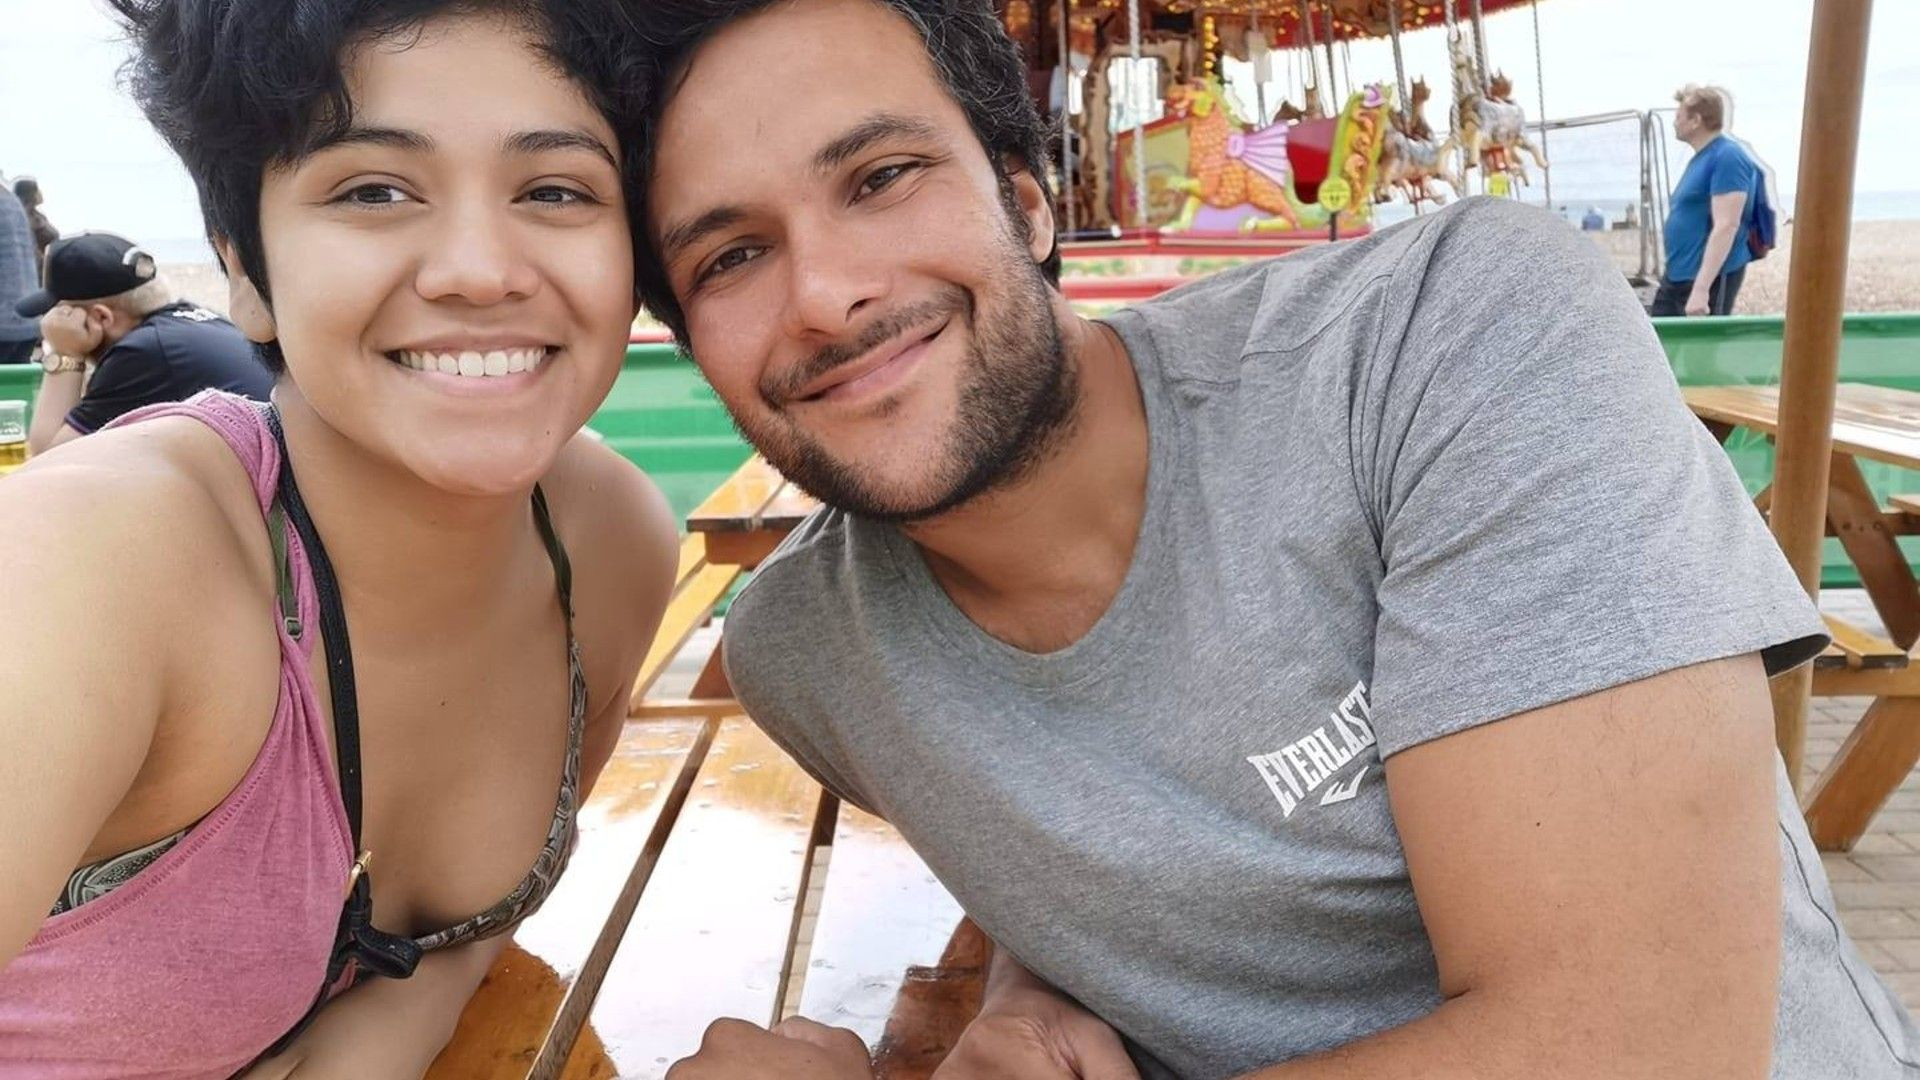 Jai Andrews and Karen Mendoza now plan to make a long-distance relationship work, after meeting via video chat